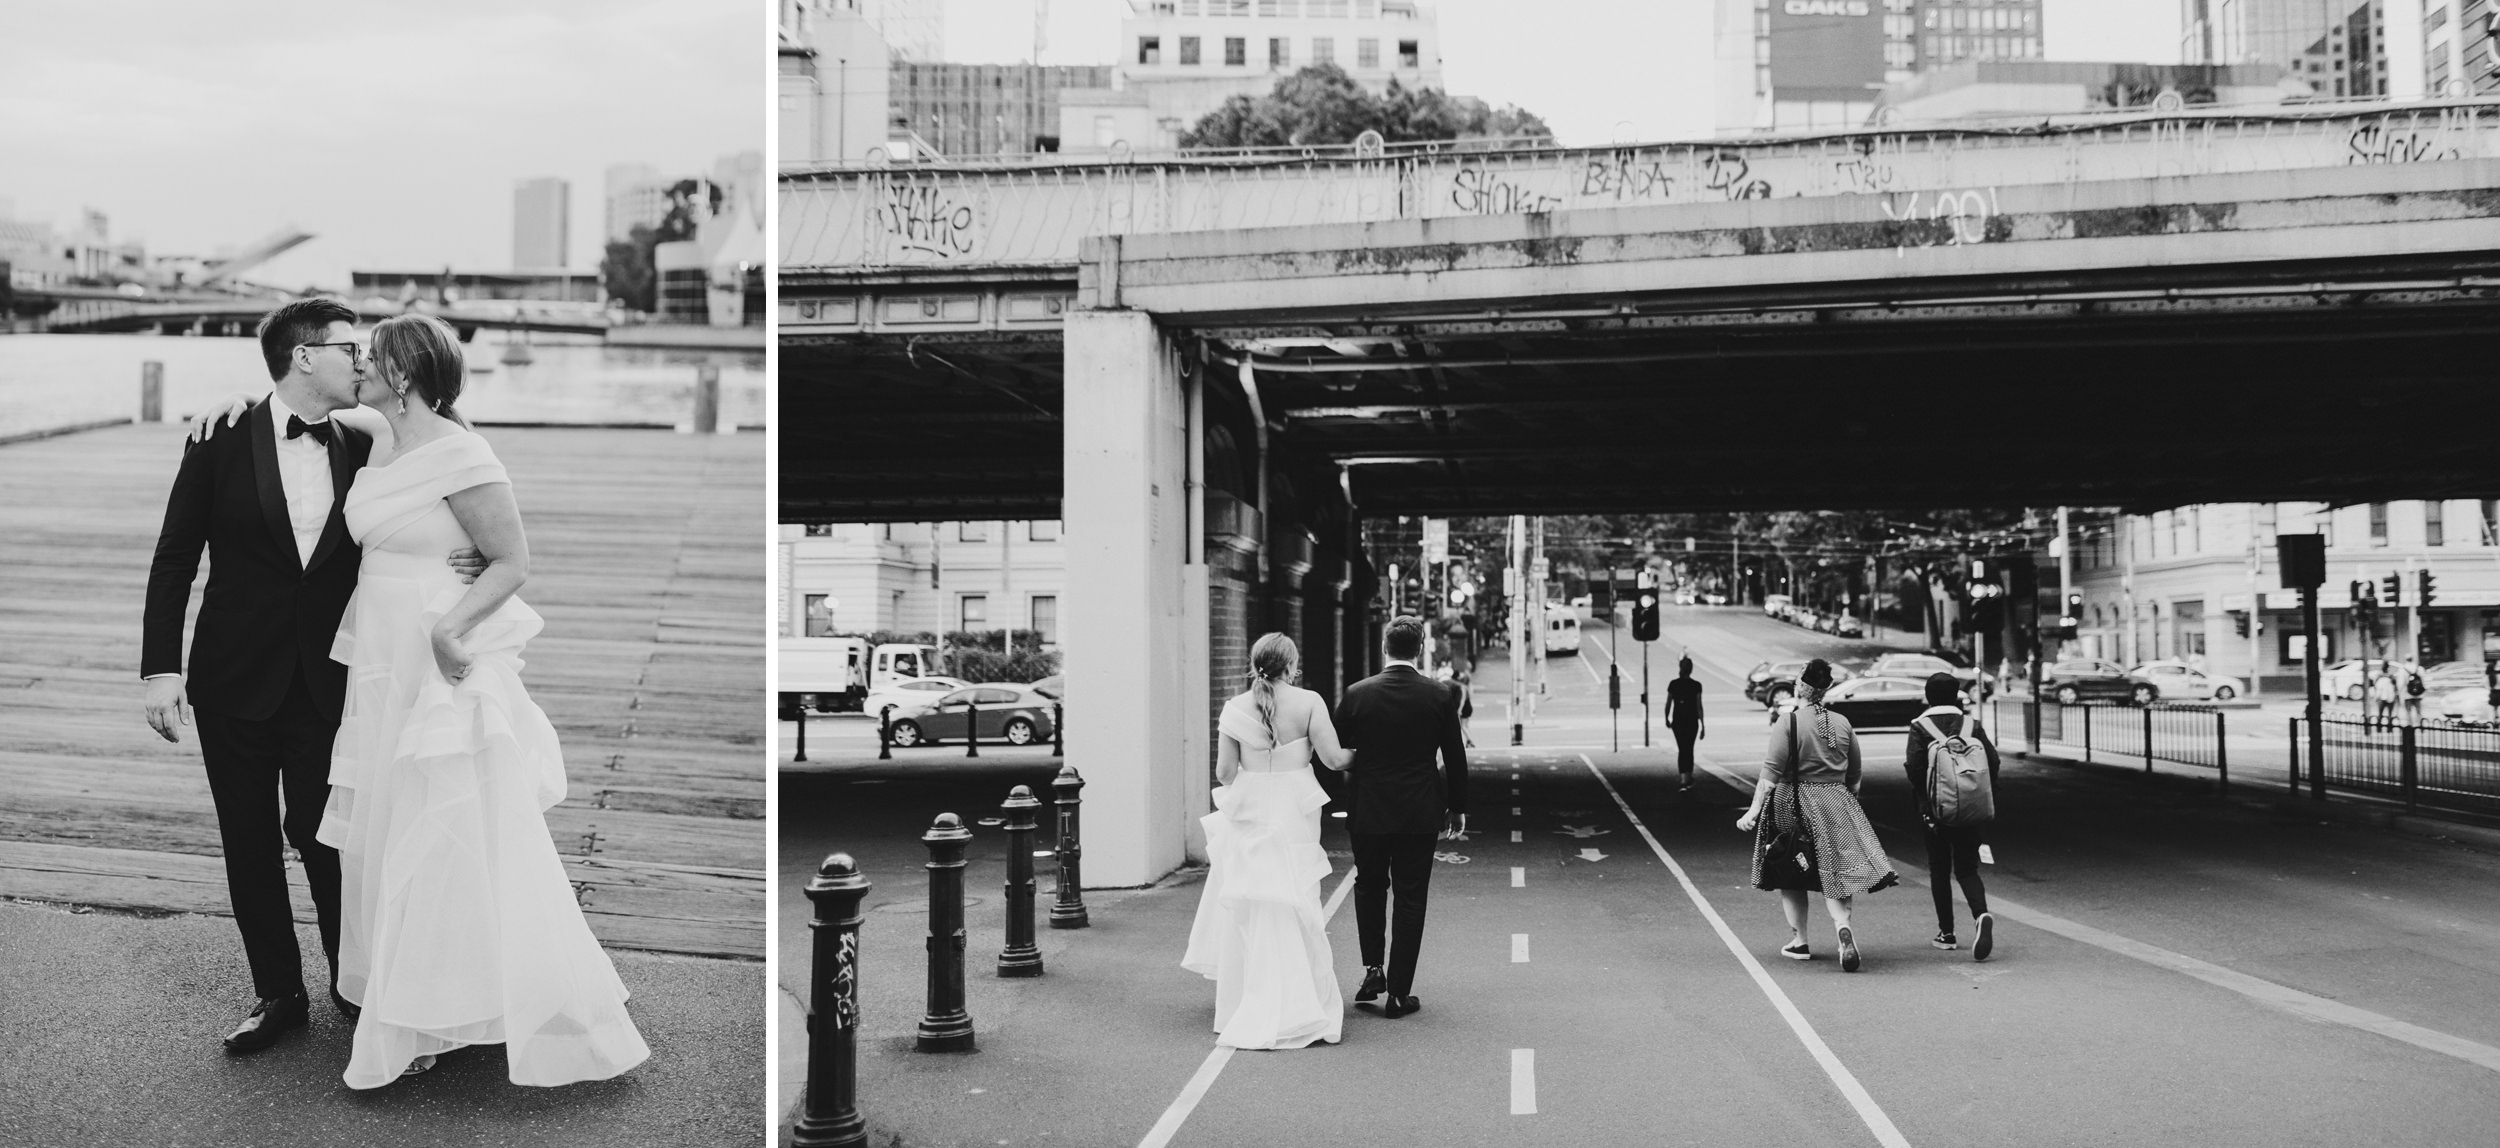 Melbourne_City_Rooftop_Wedding_Tyson_Brigette116.JPG